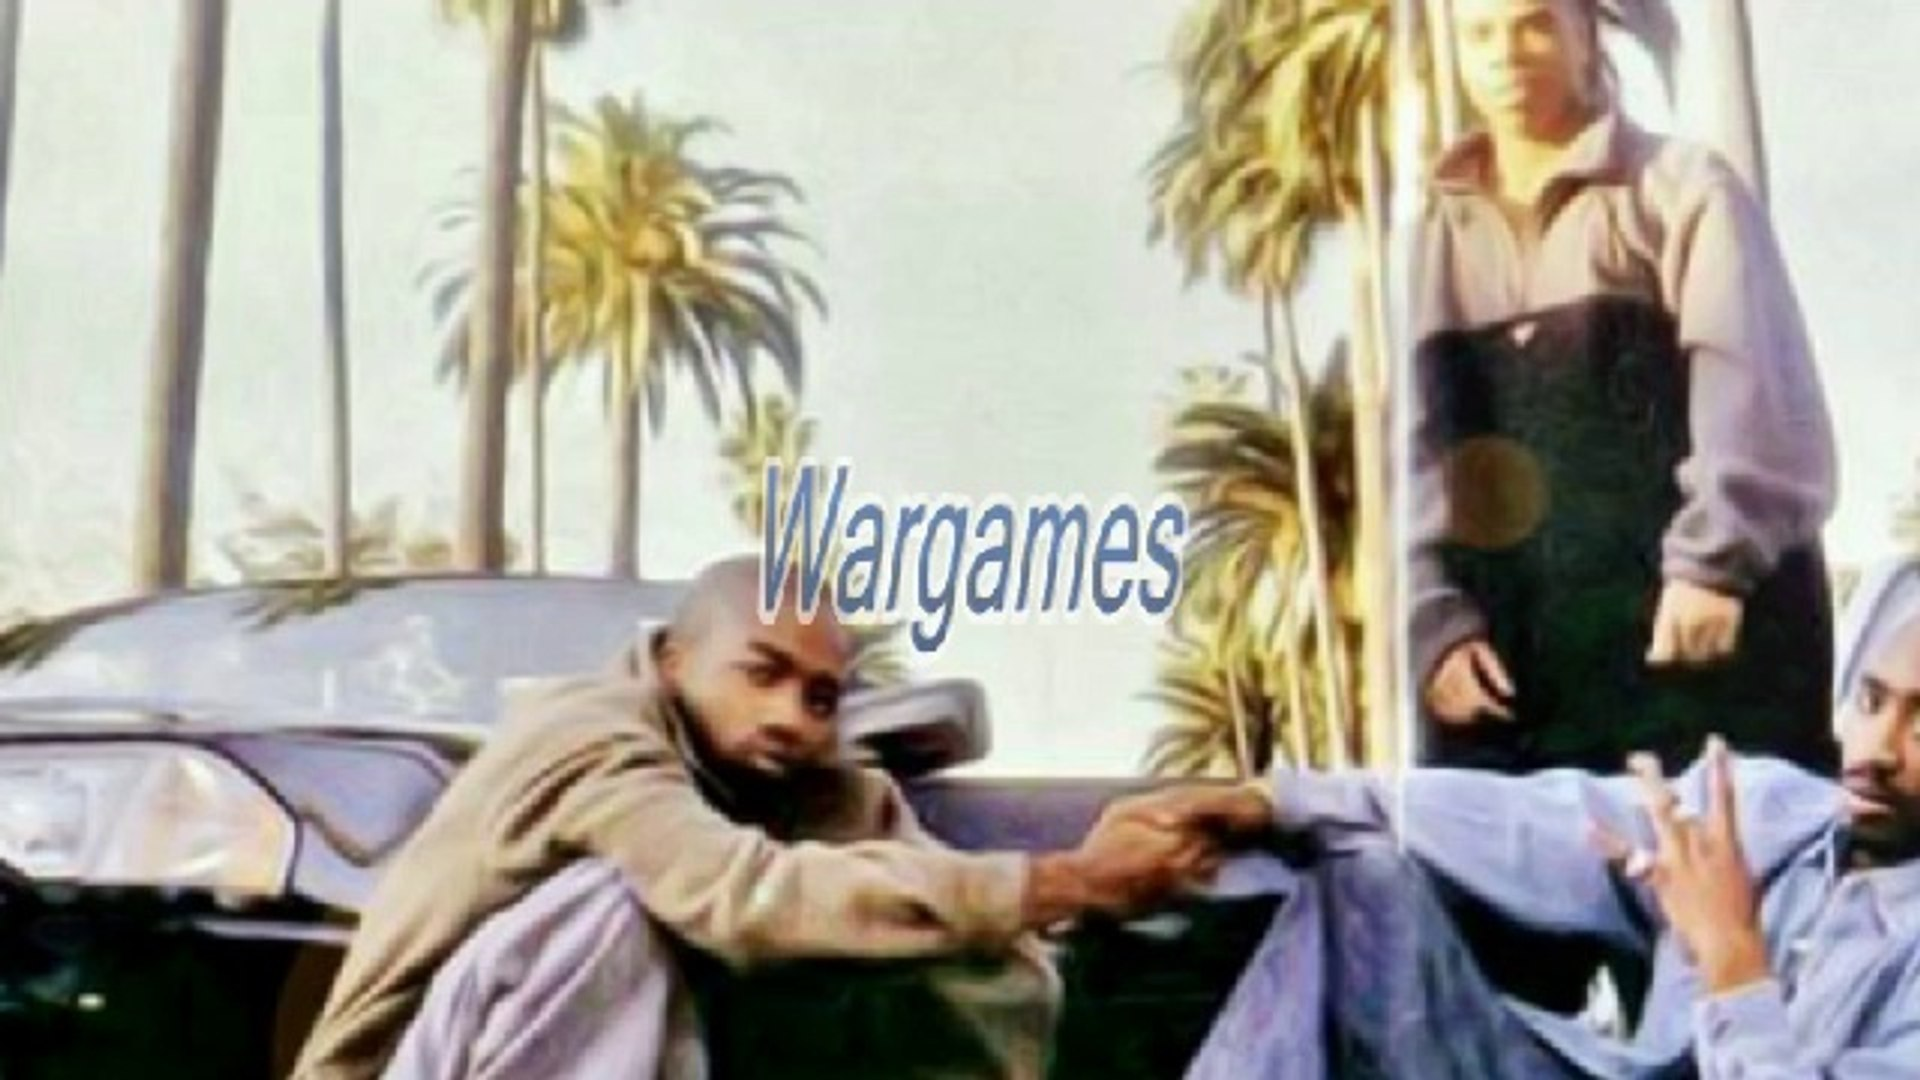 2pac & Outlawz Wargames unreleased version